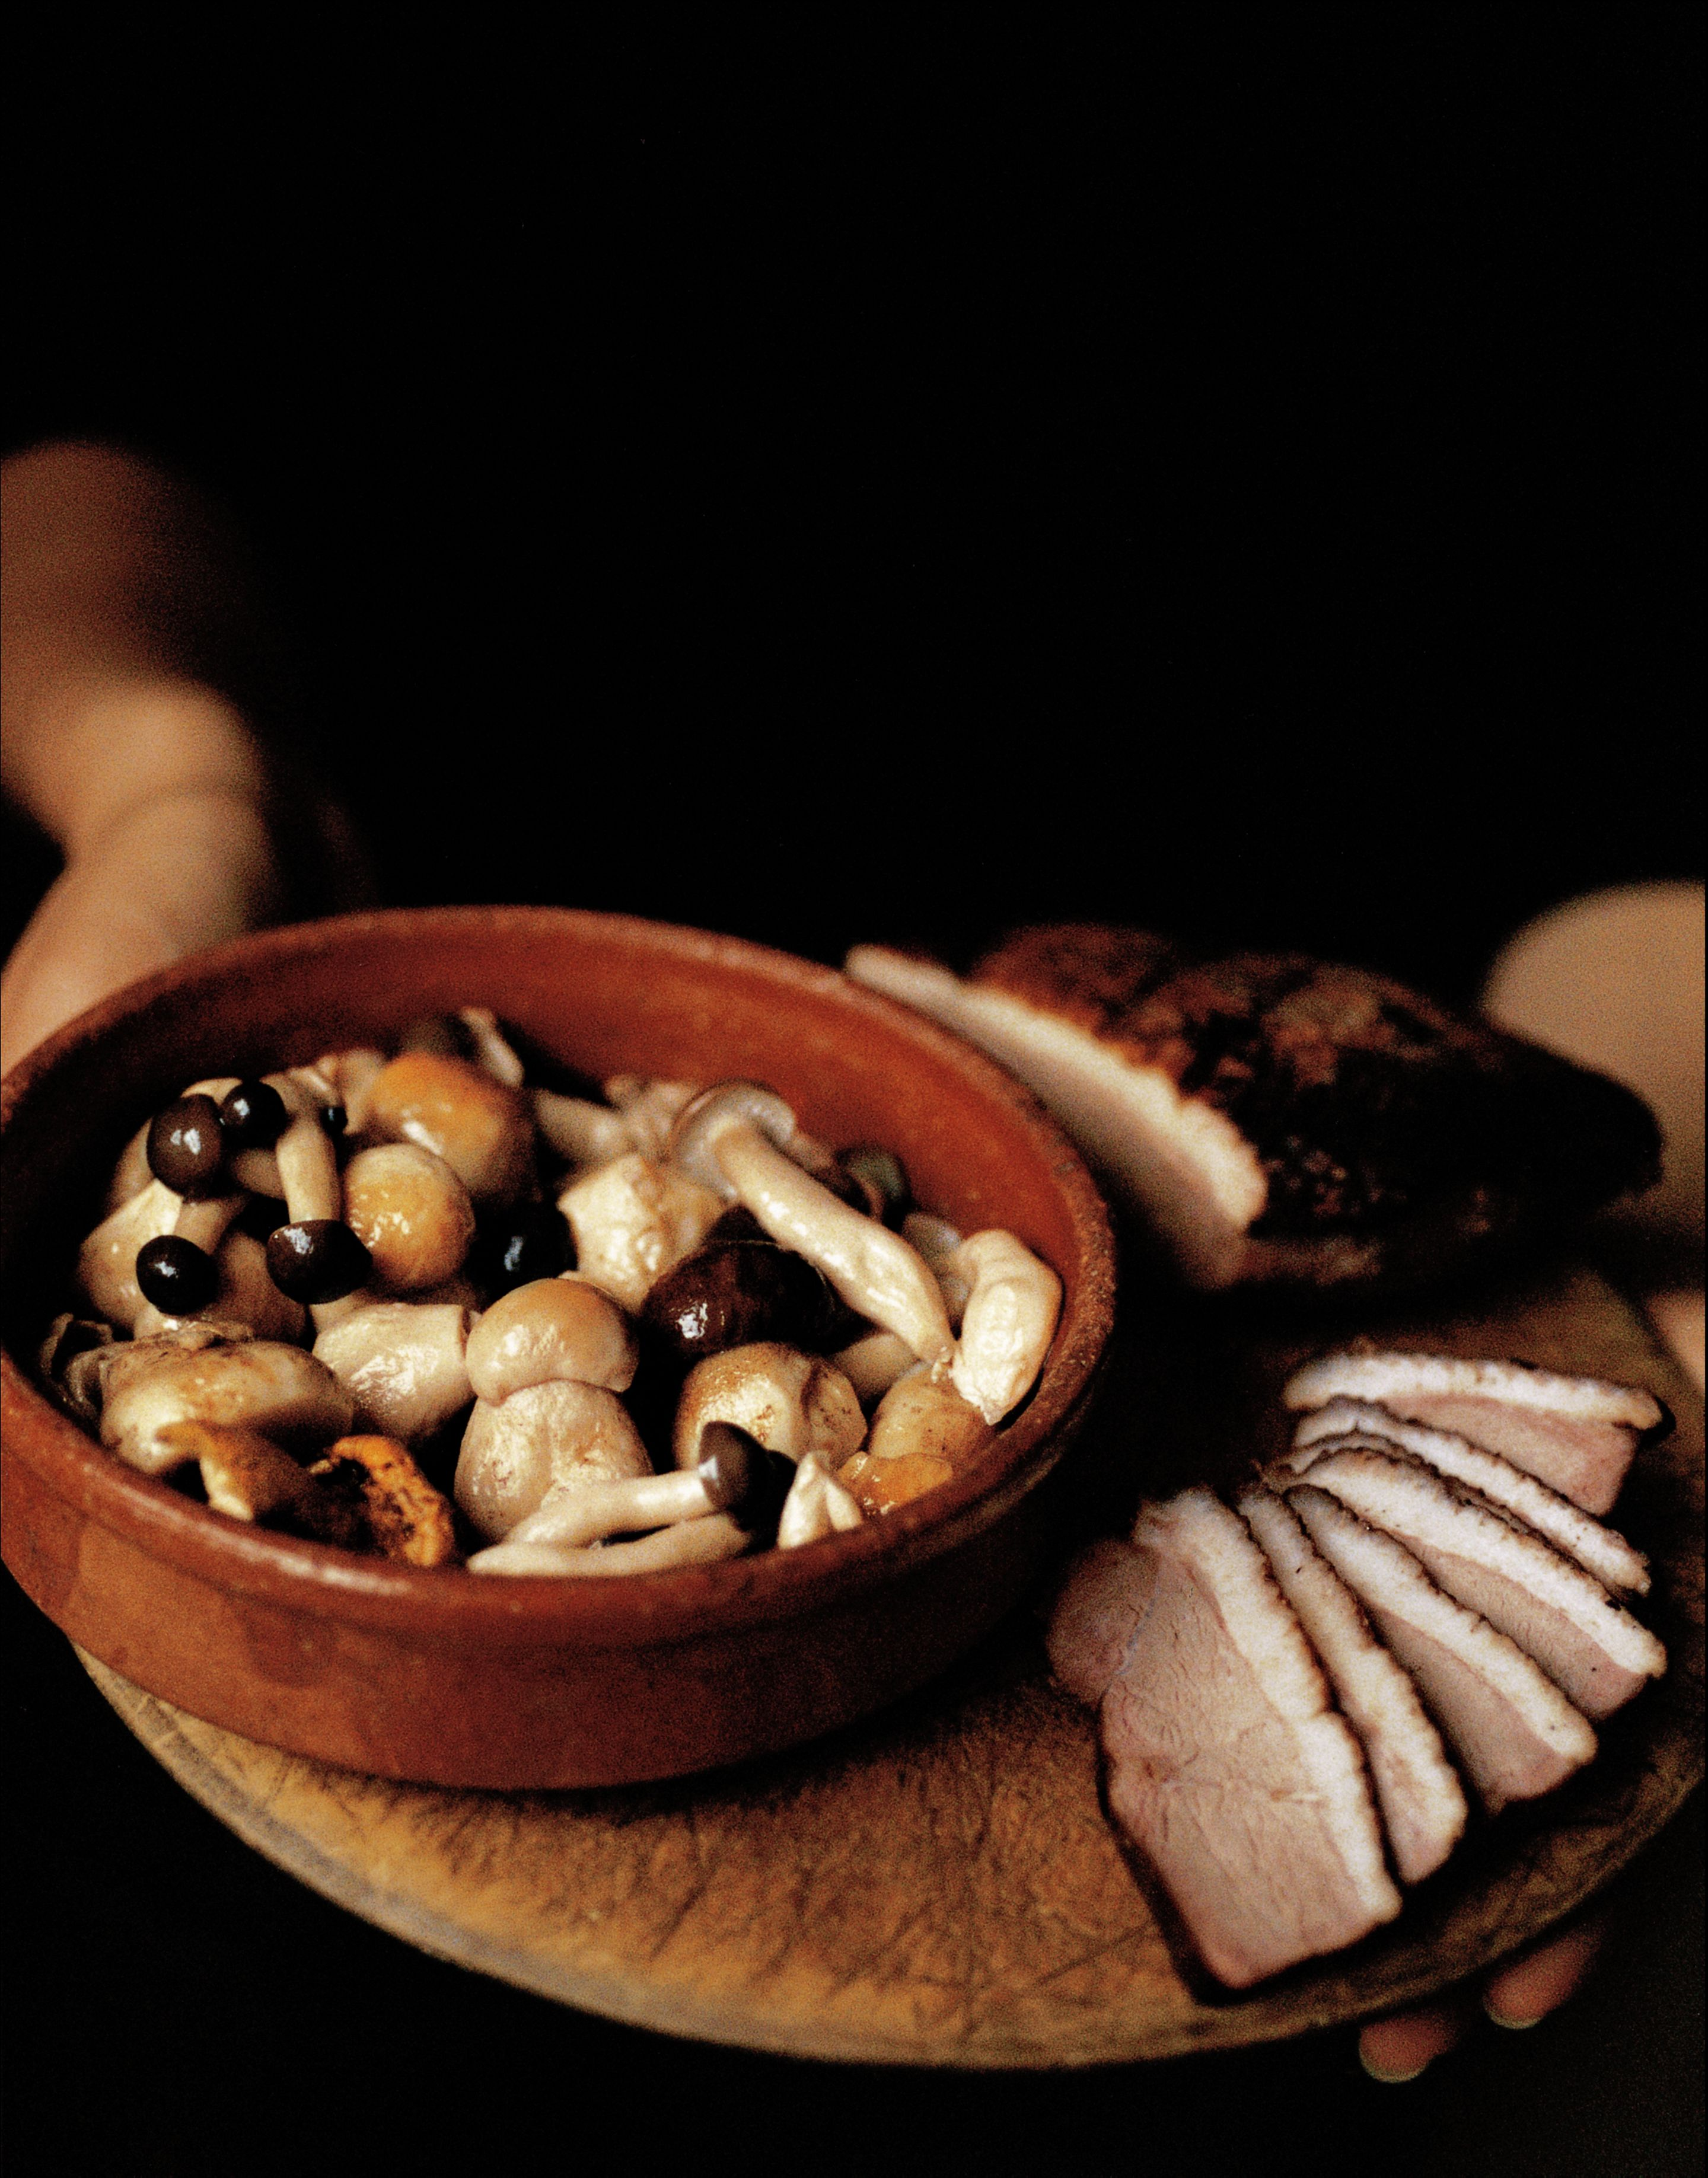 Smoked breast of duck with preserved mushrooms